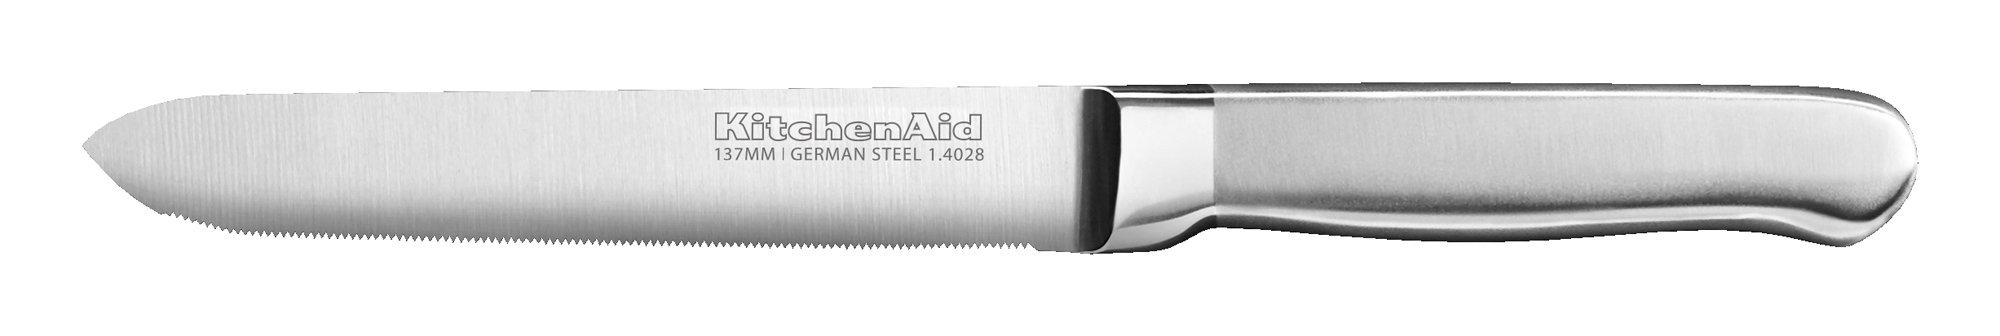 KitchenAid KKFSS5SUST Classic Forged Series Brushed Serrated Utility Knife, Stainless Steel, 5.5''